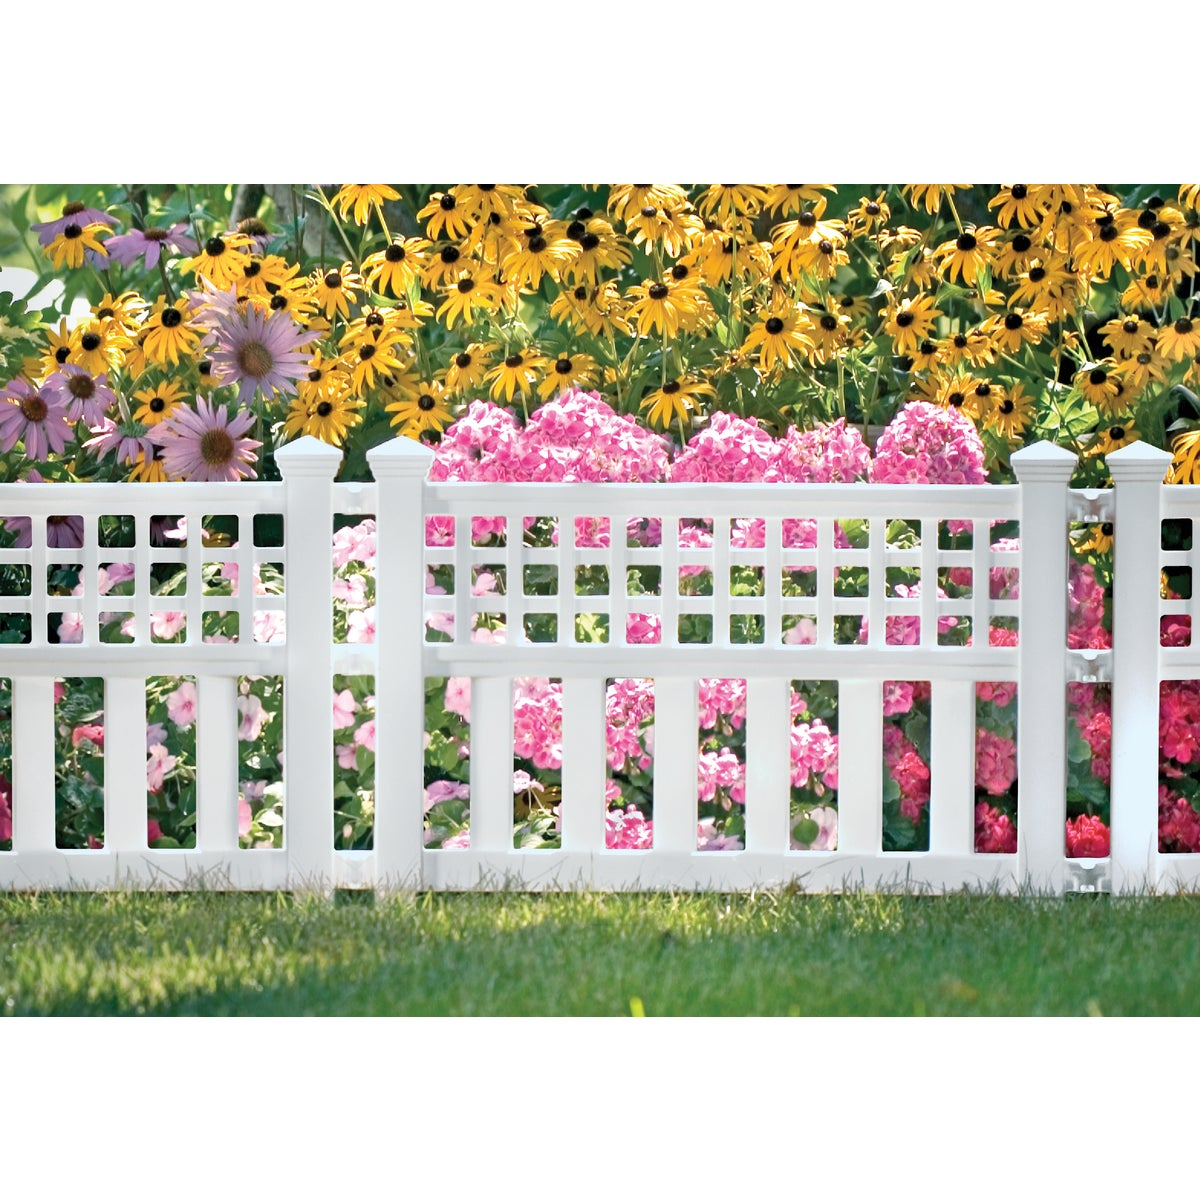 GRAND VIEW POLY FENCE - GVF24 by Suncast Corporation